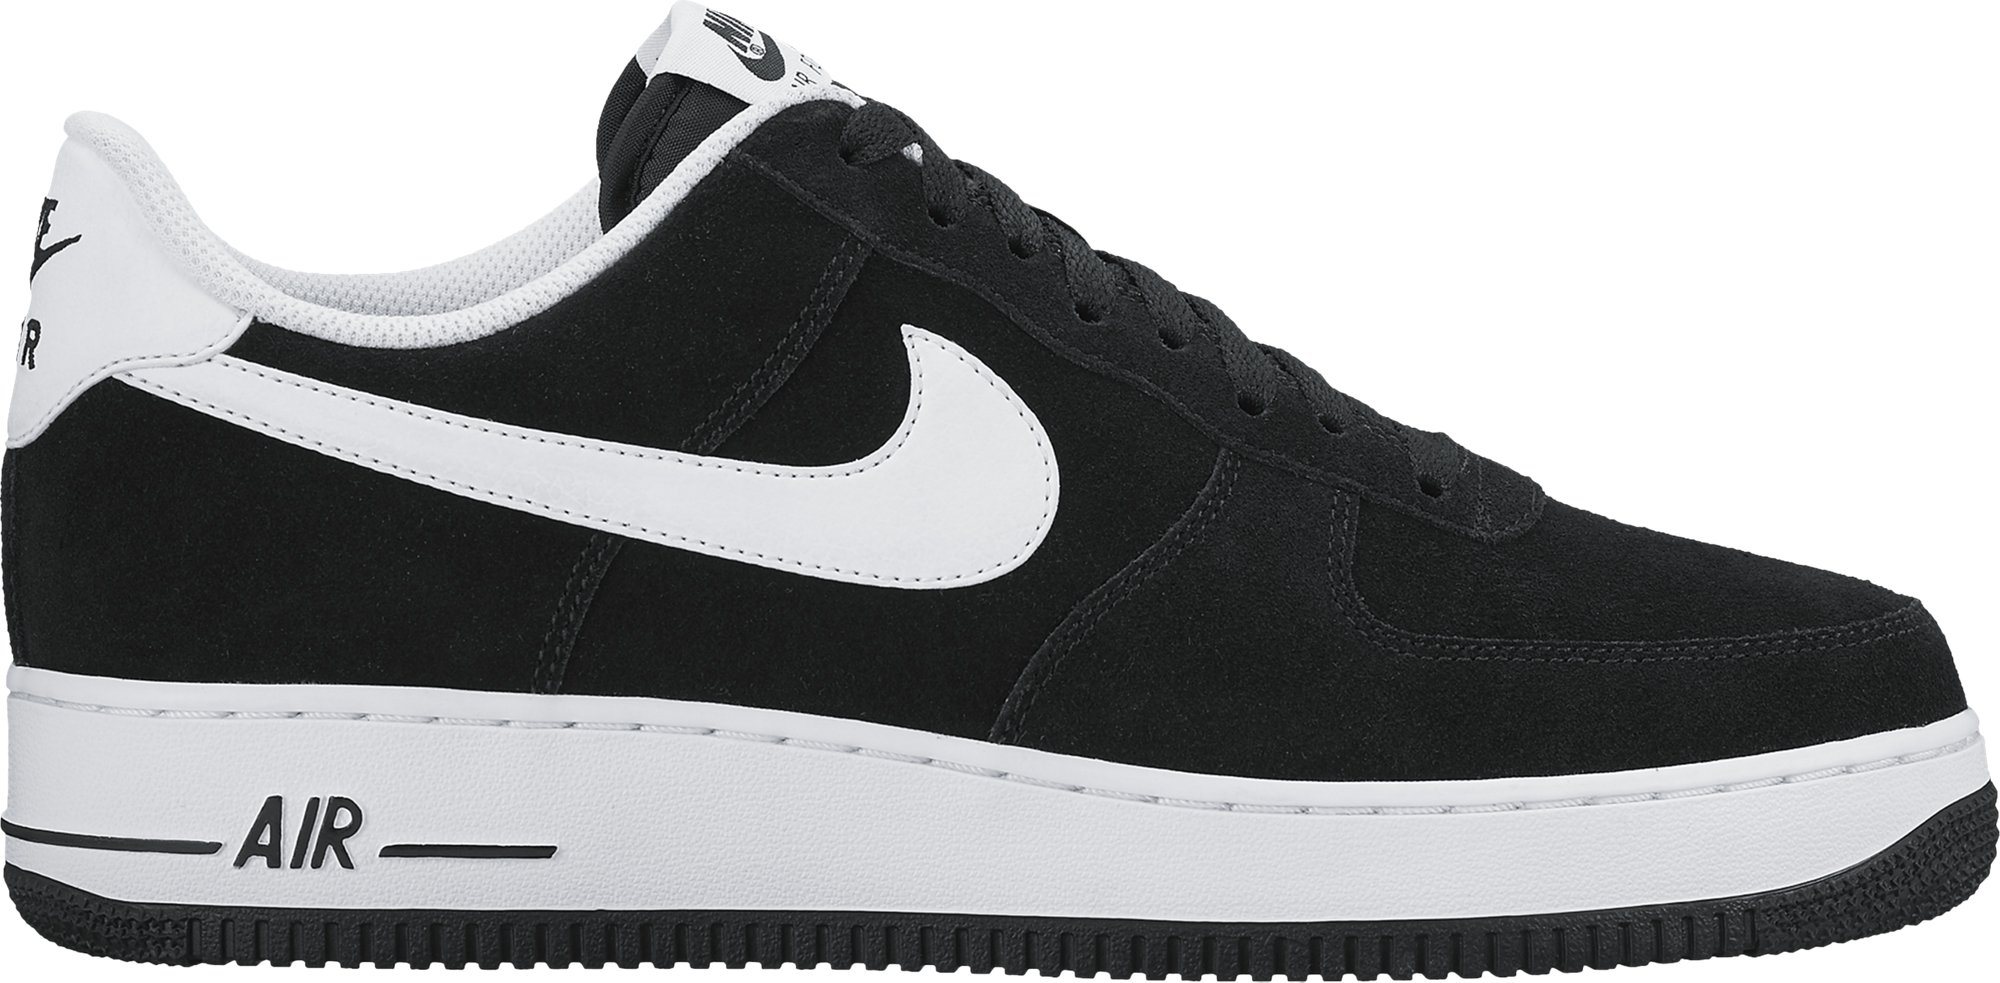 the latest e57f3 564b6 Galleon - NIKE Mens Air Force 1 Low 07 Basketball Shoes Black White  315122-068 Size 8